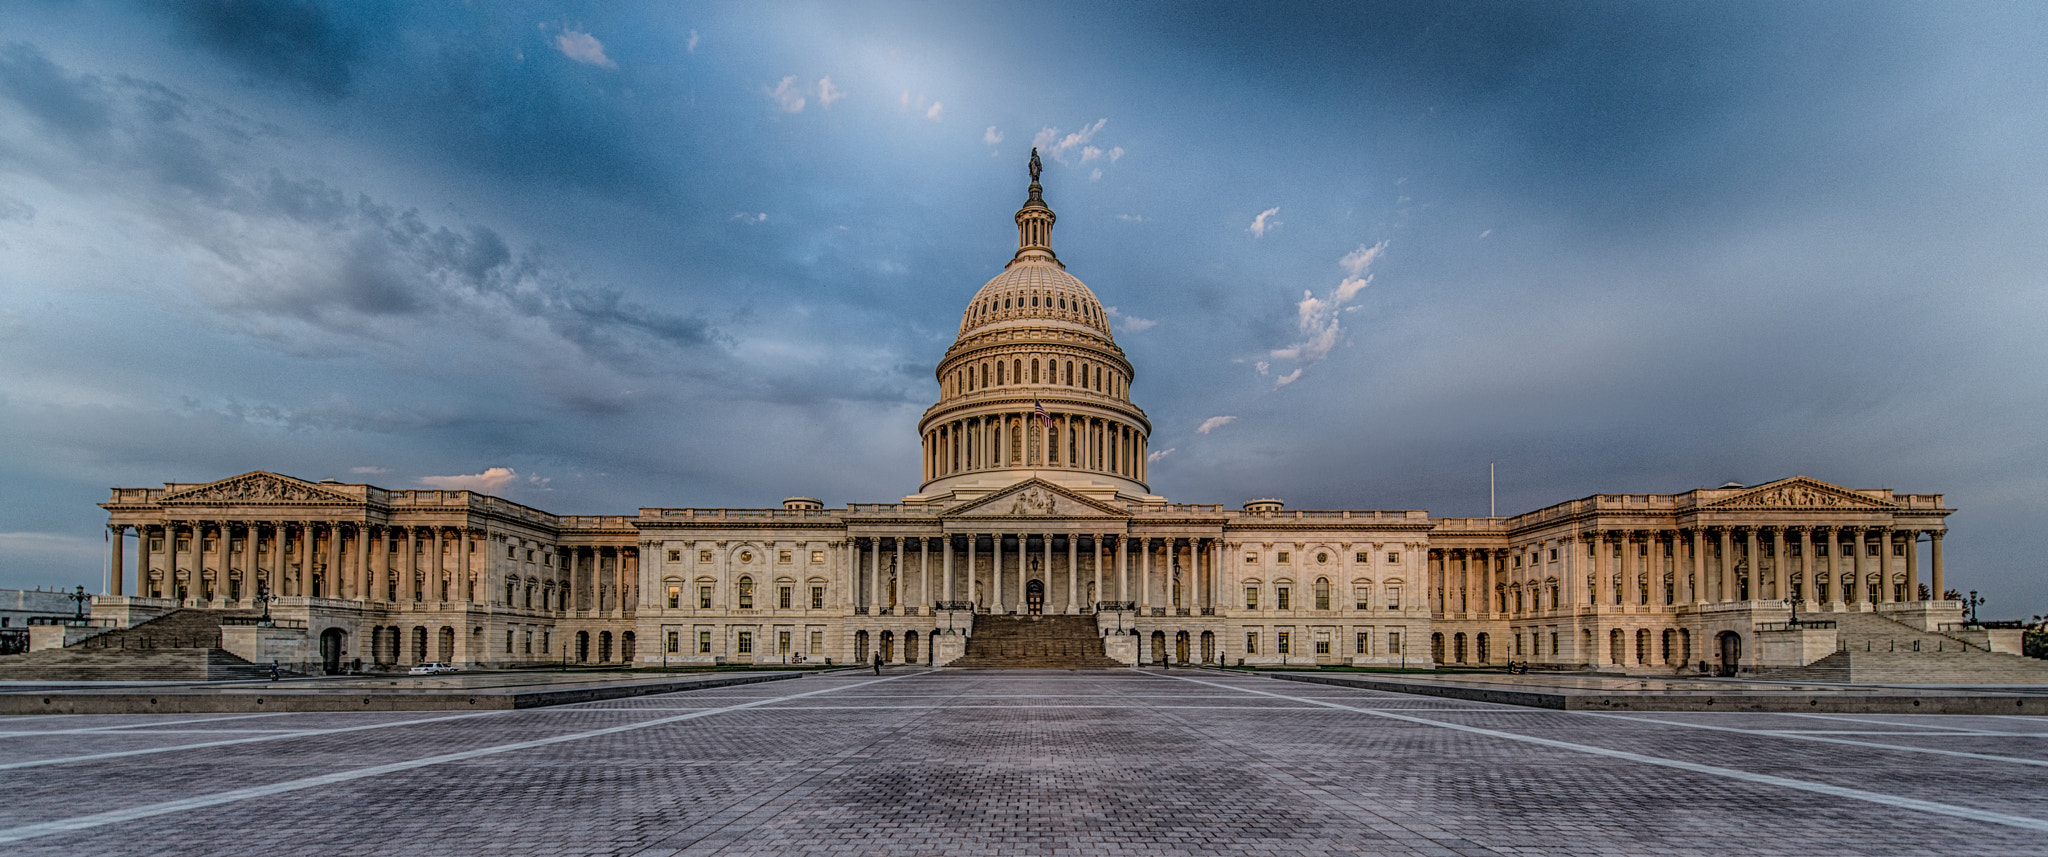 Photograph US Capitol by Frank Furbish on 500px